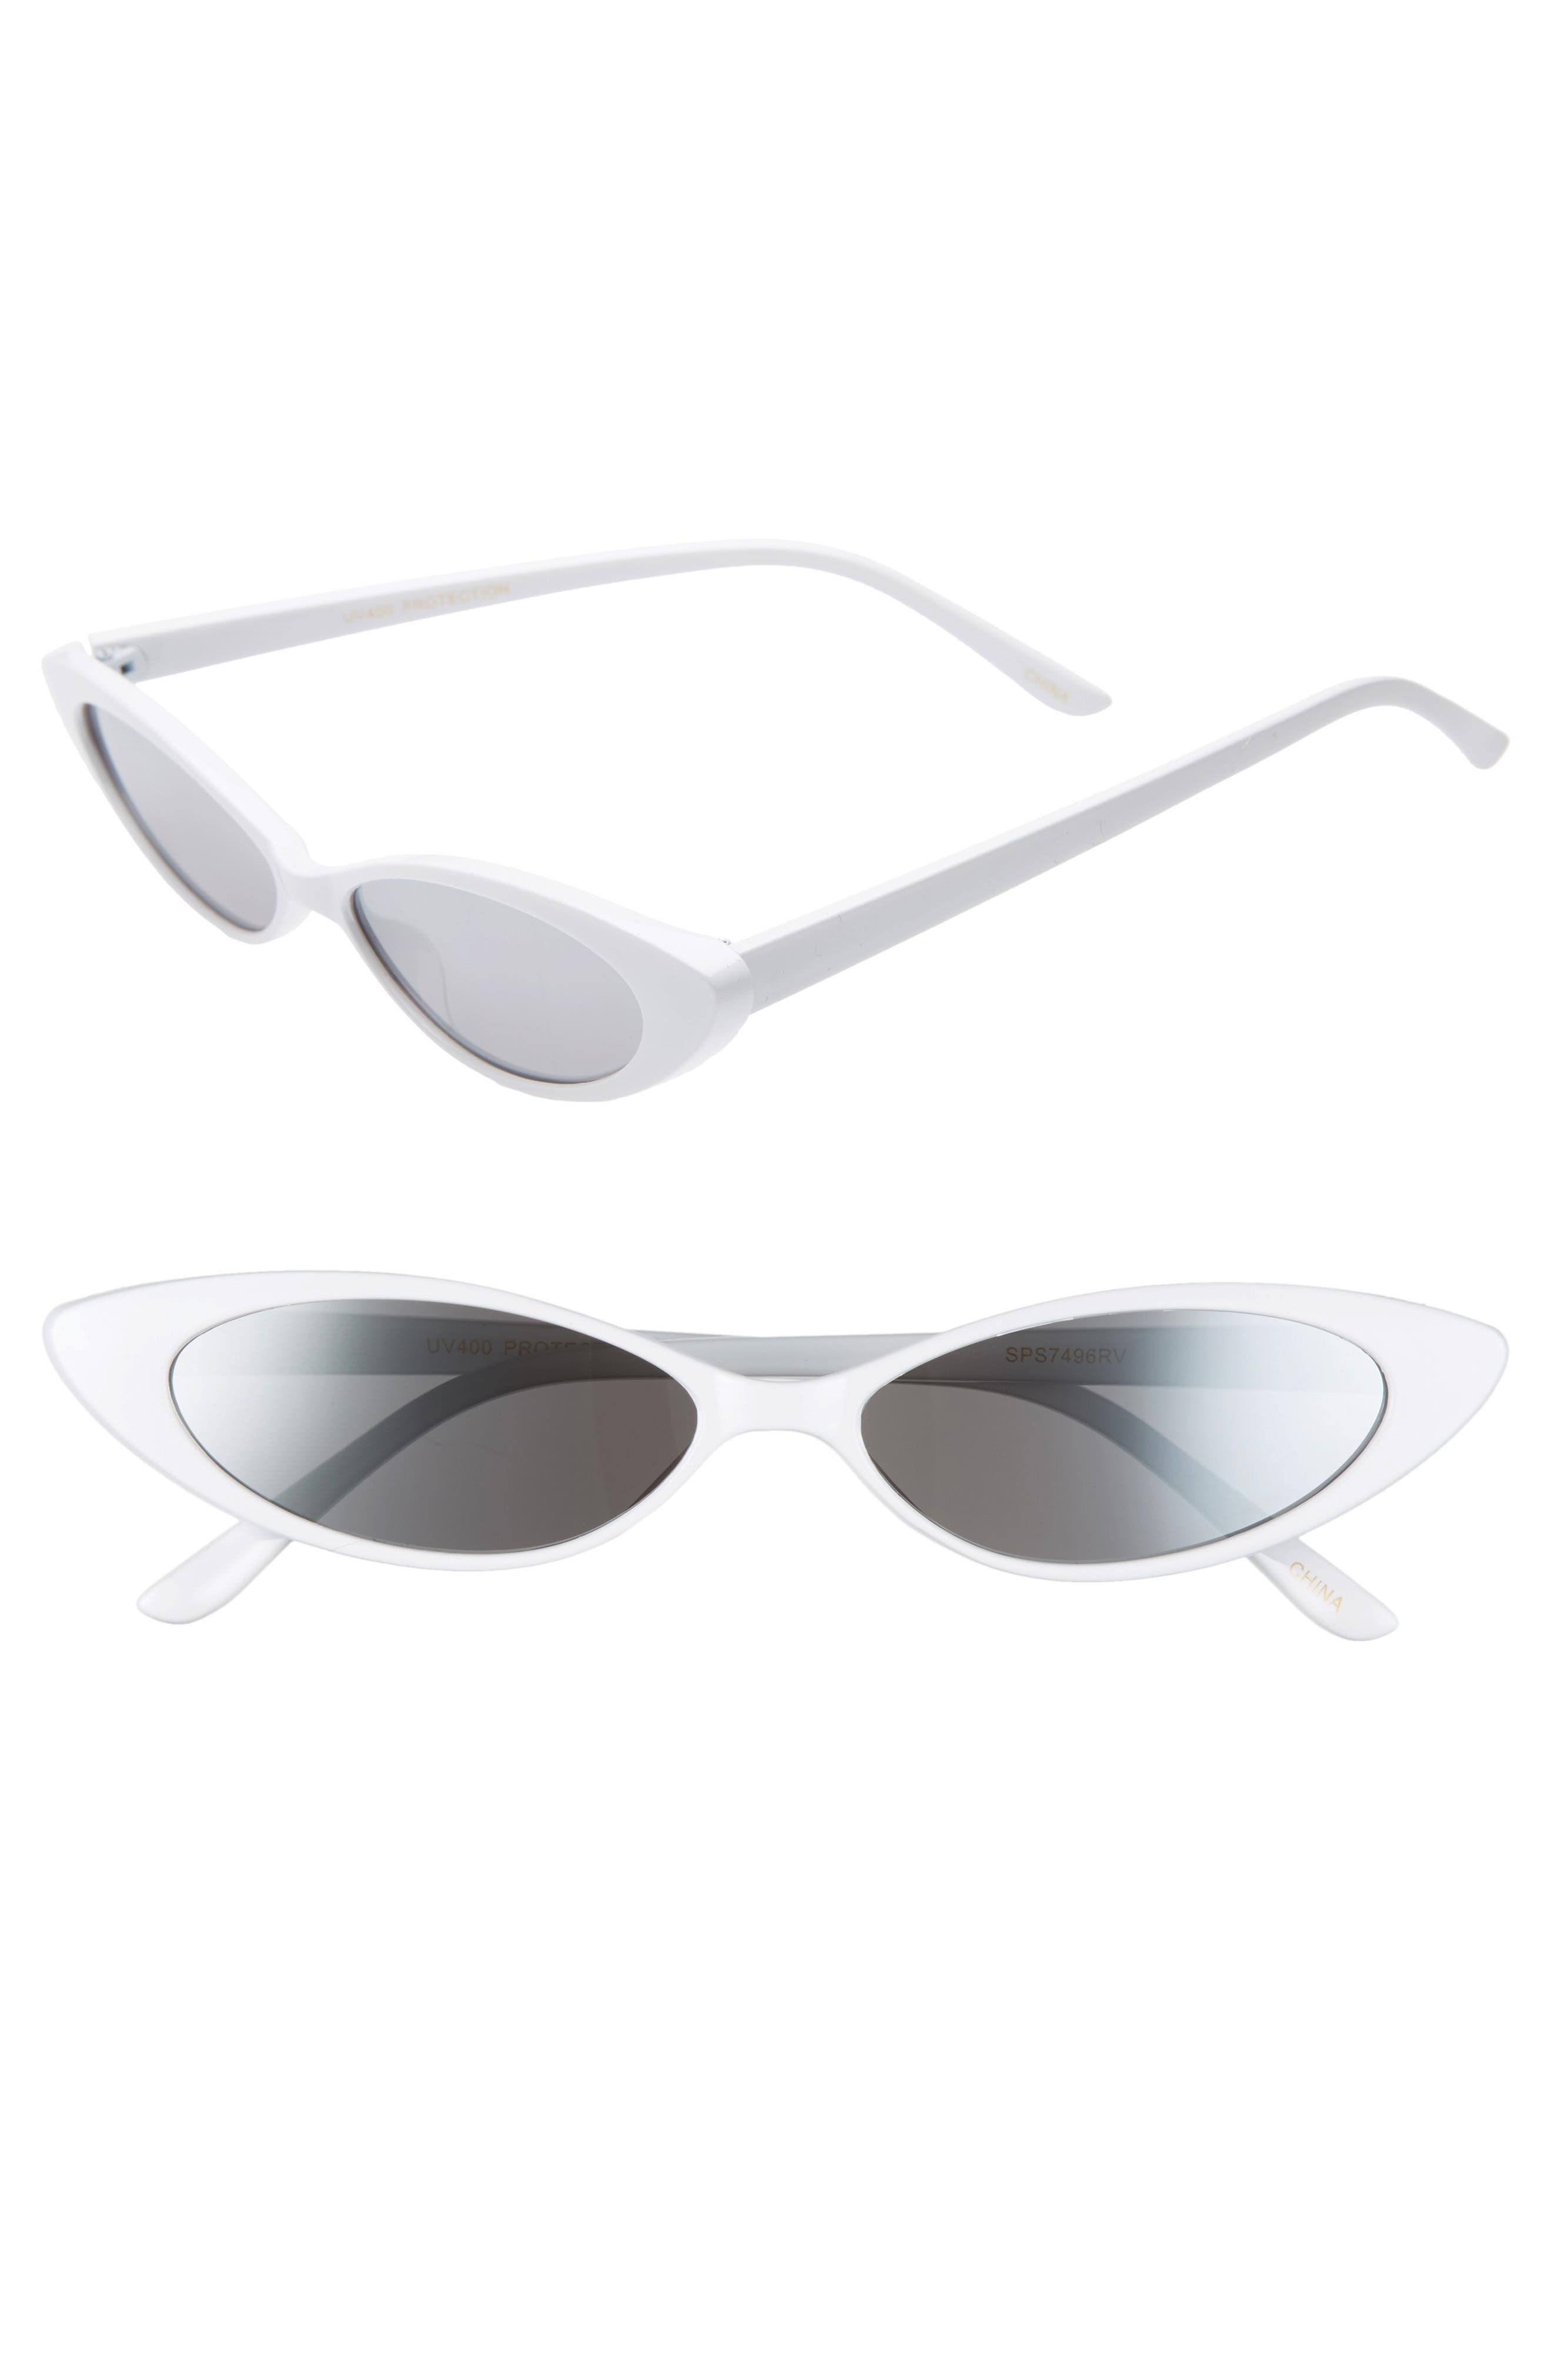 Oval Sunglasses,                             Main thumbnail 1, color,                             WHITE/ SILVER